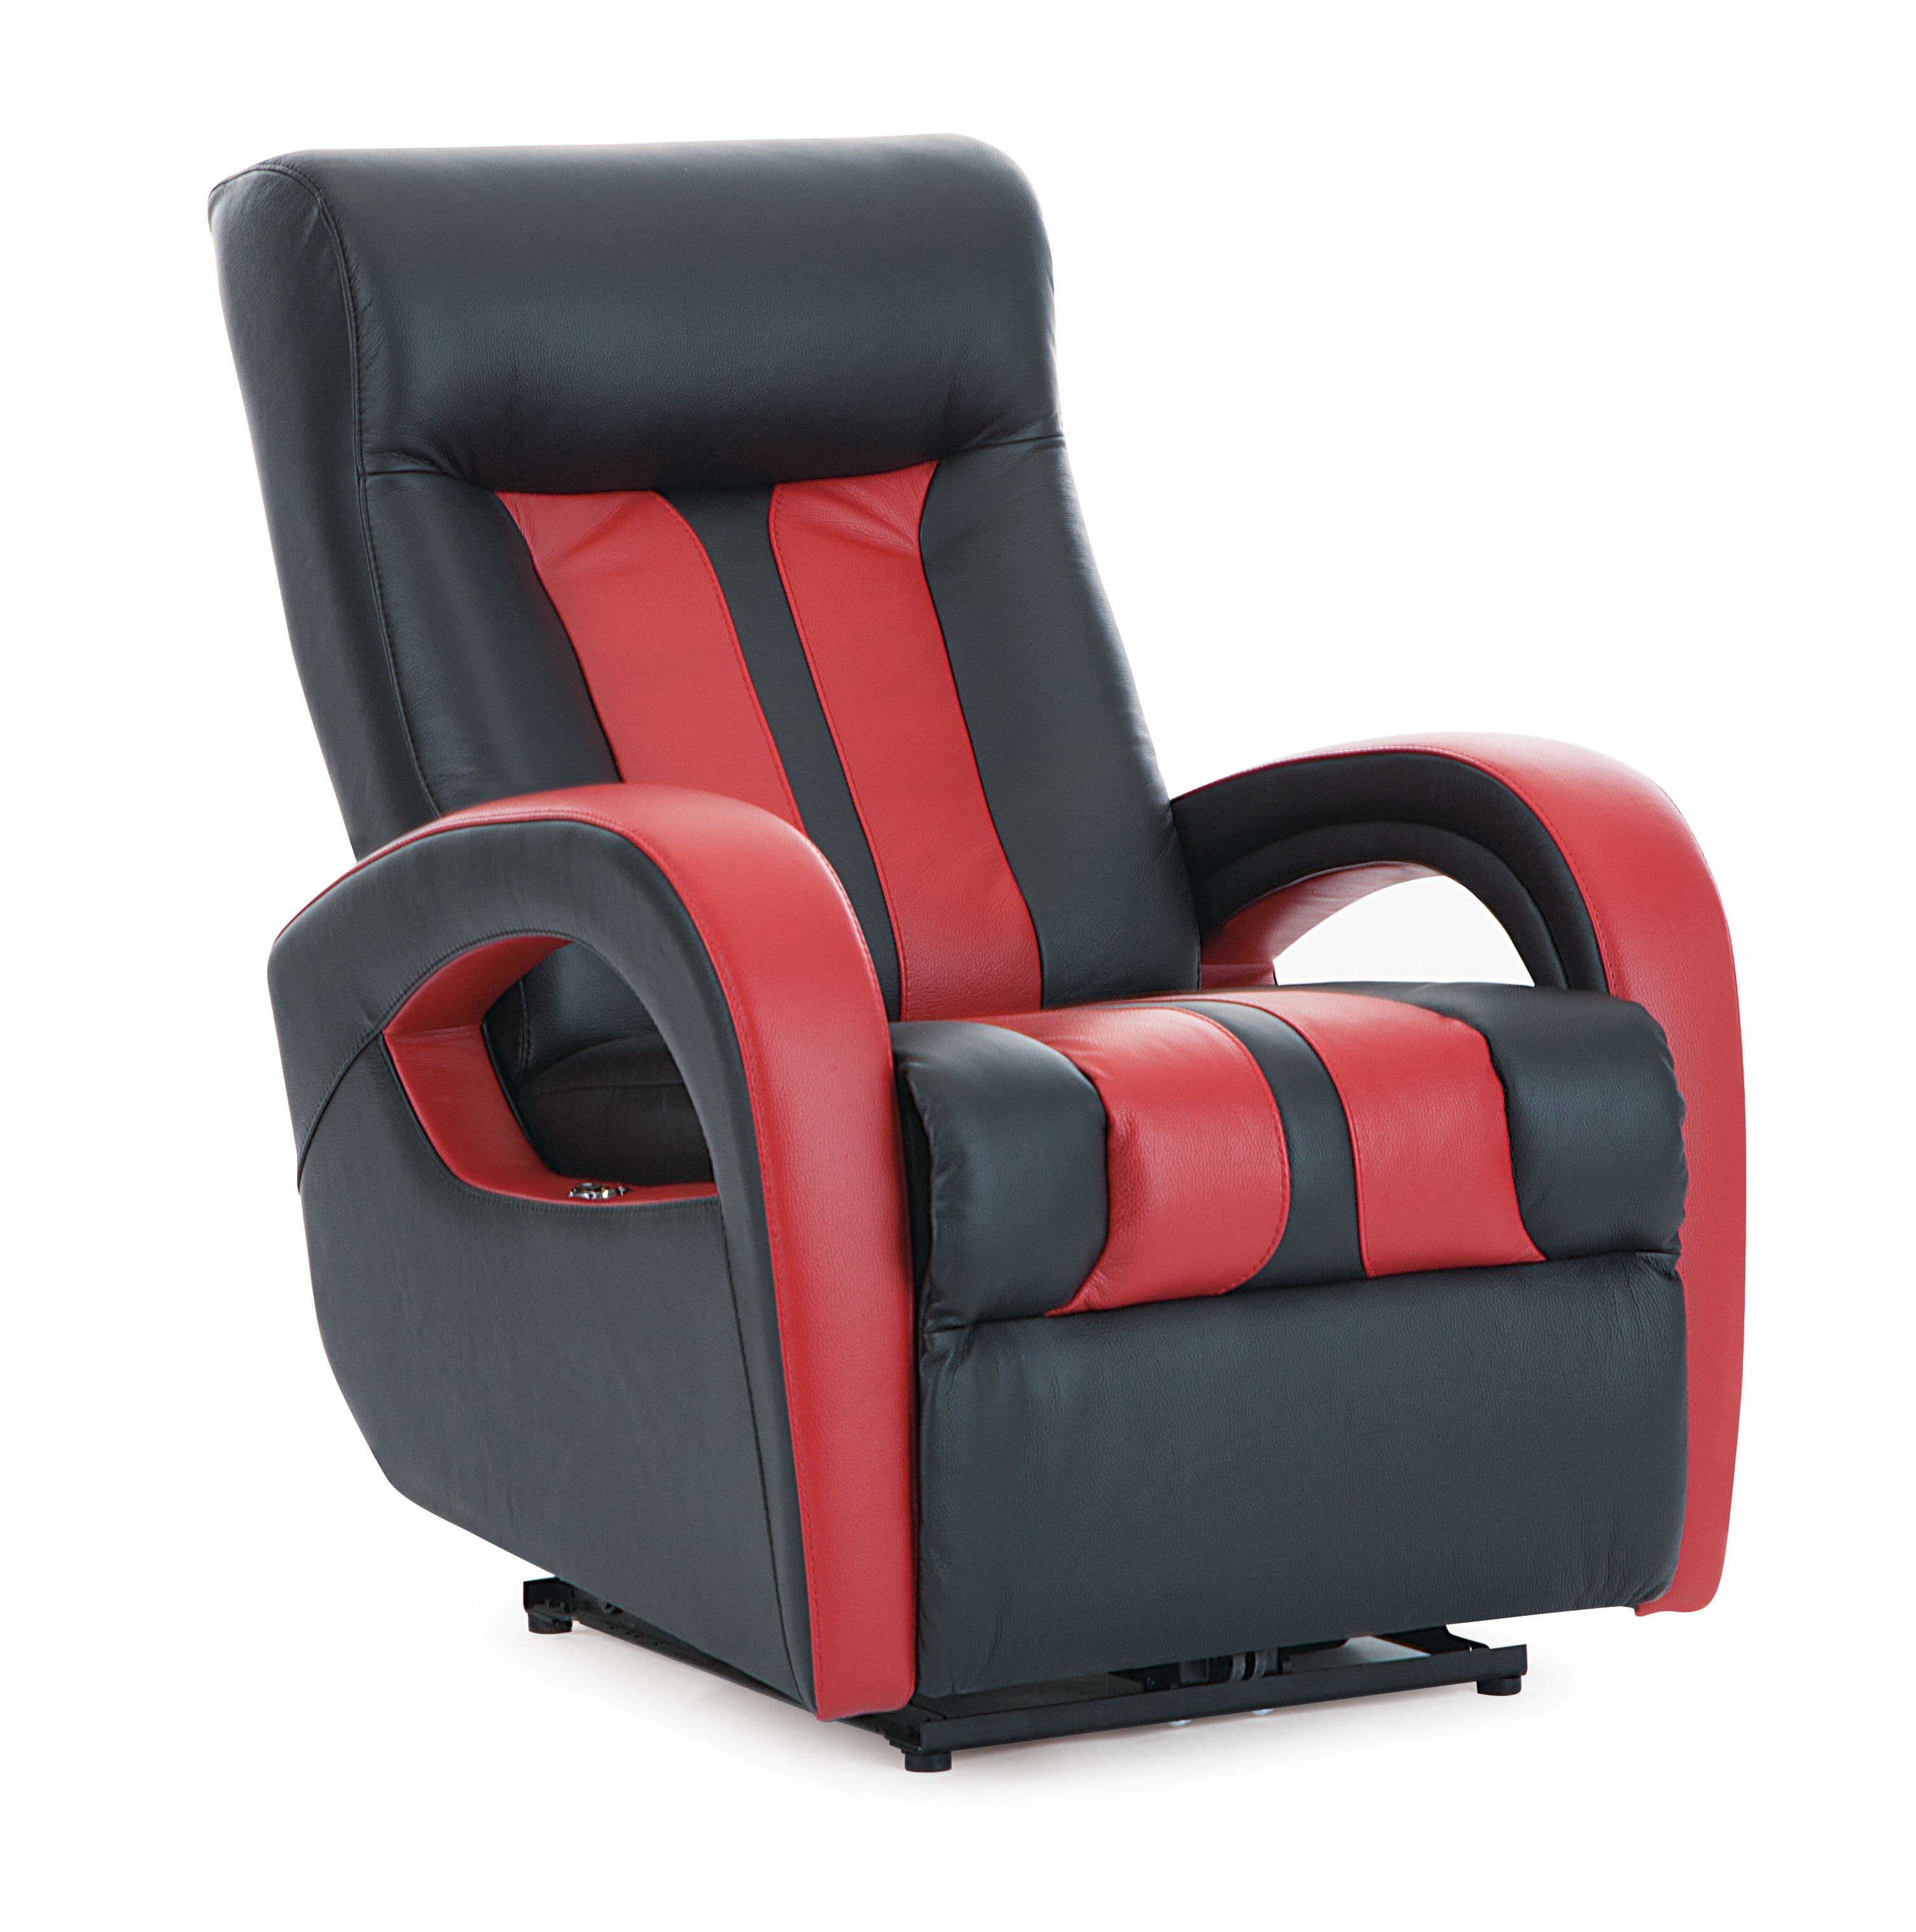 Swell Bass Line Power Recliner W Sound 43800 31 Sofas And Caraccident5 Cool Chair Designs And Ideas Caraccident5Info